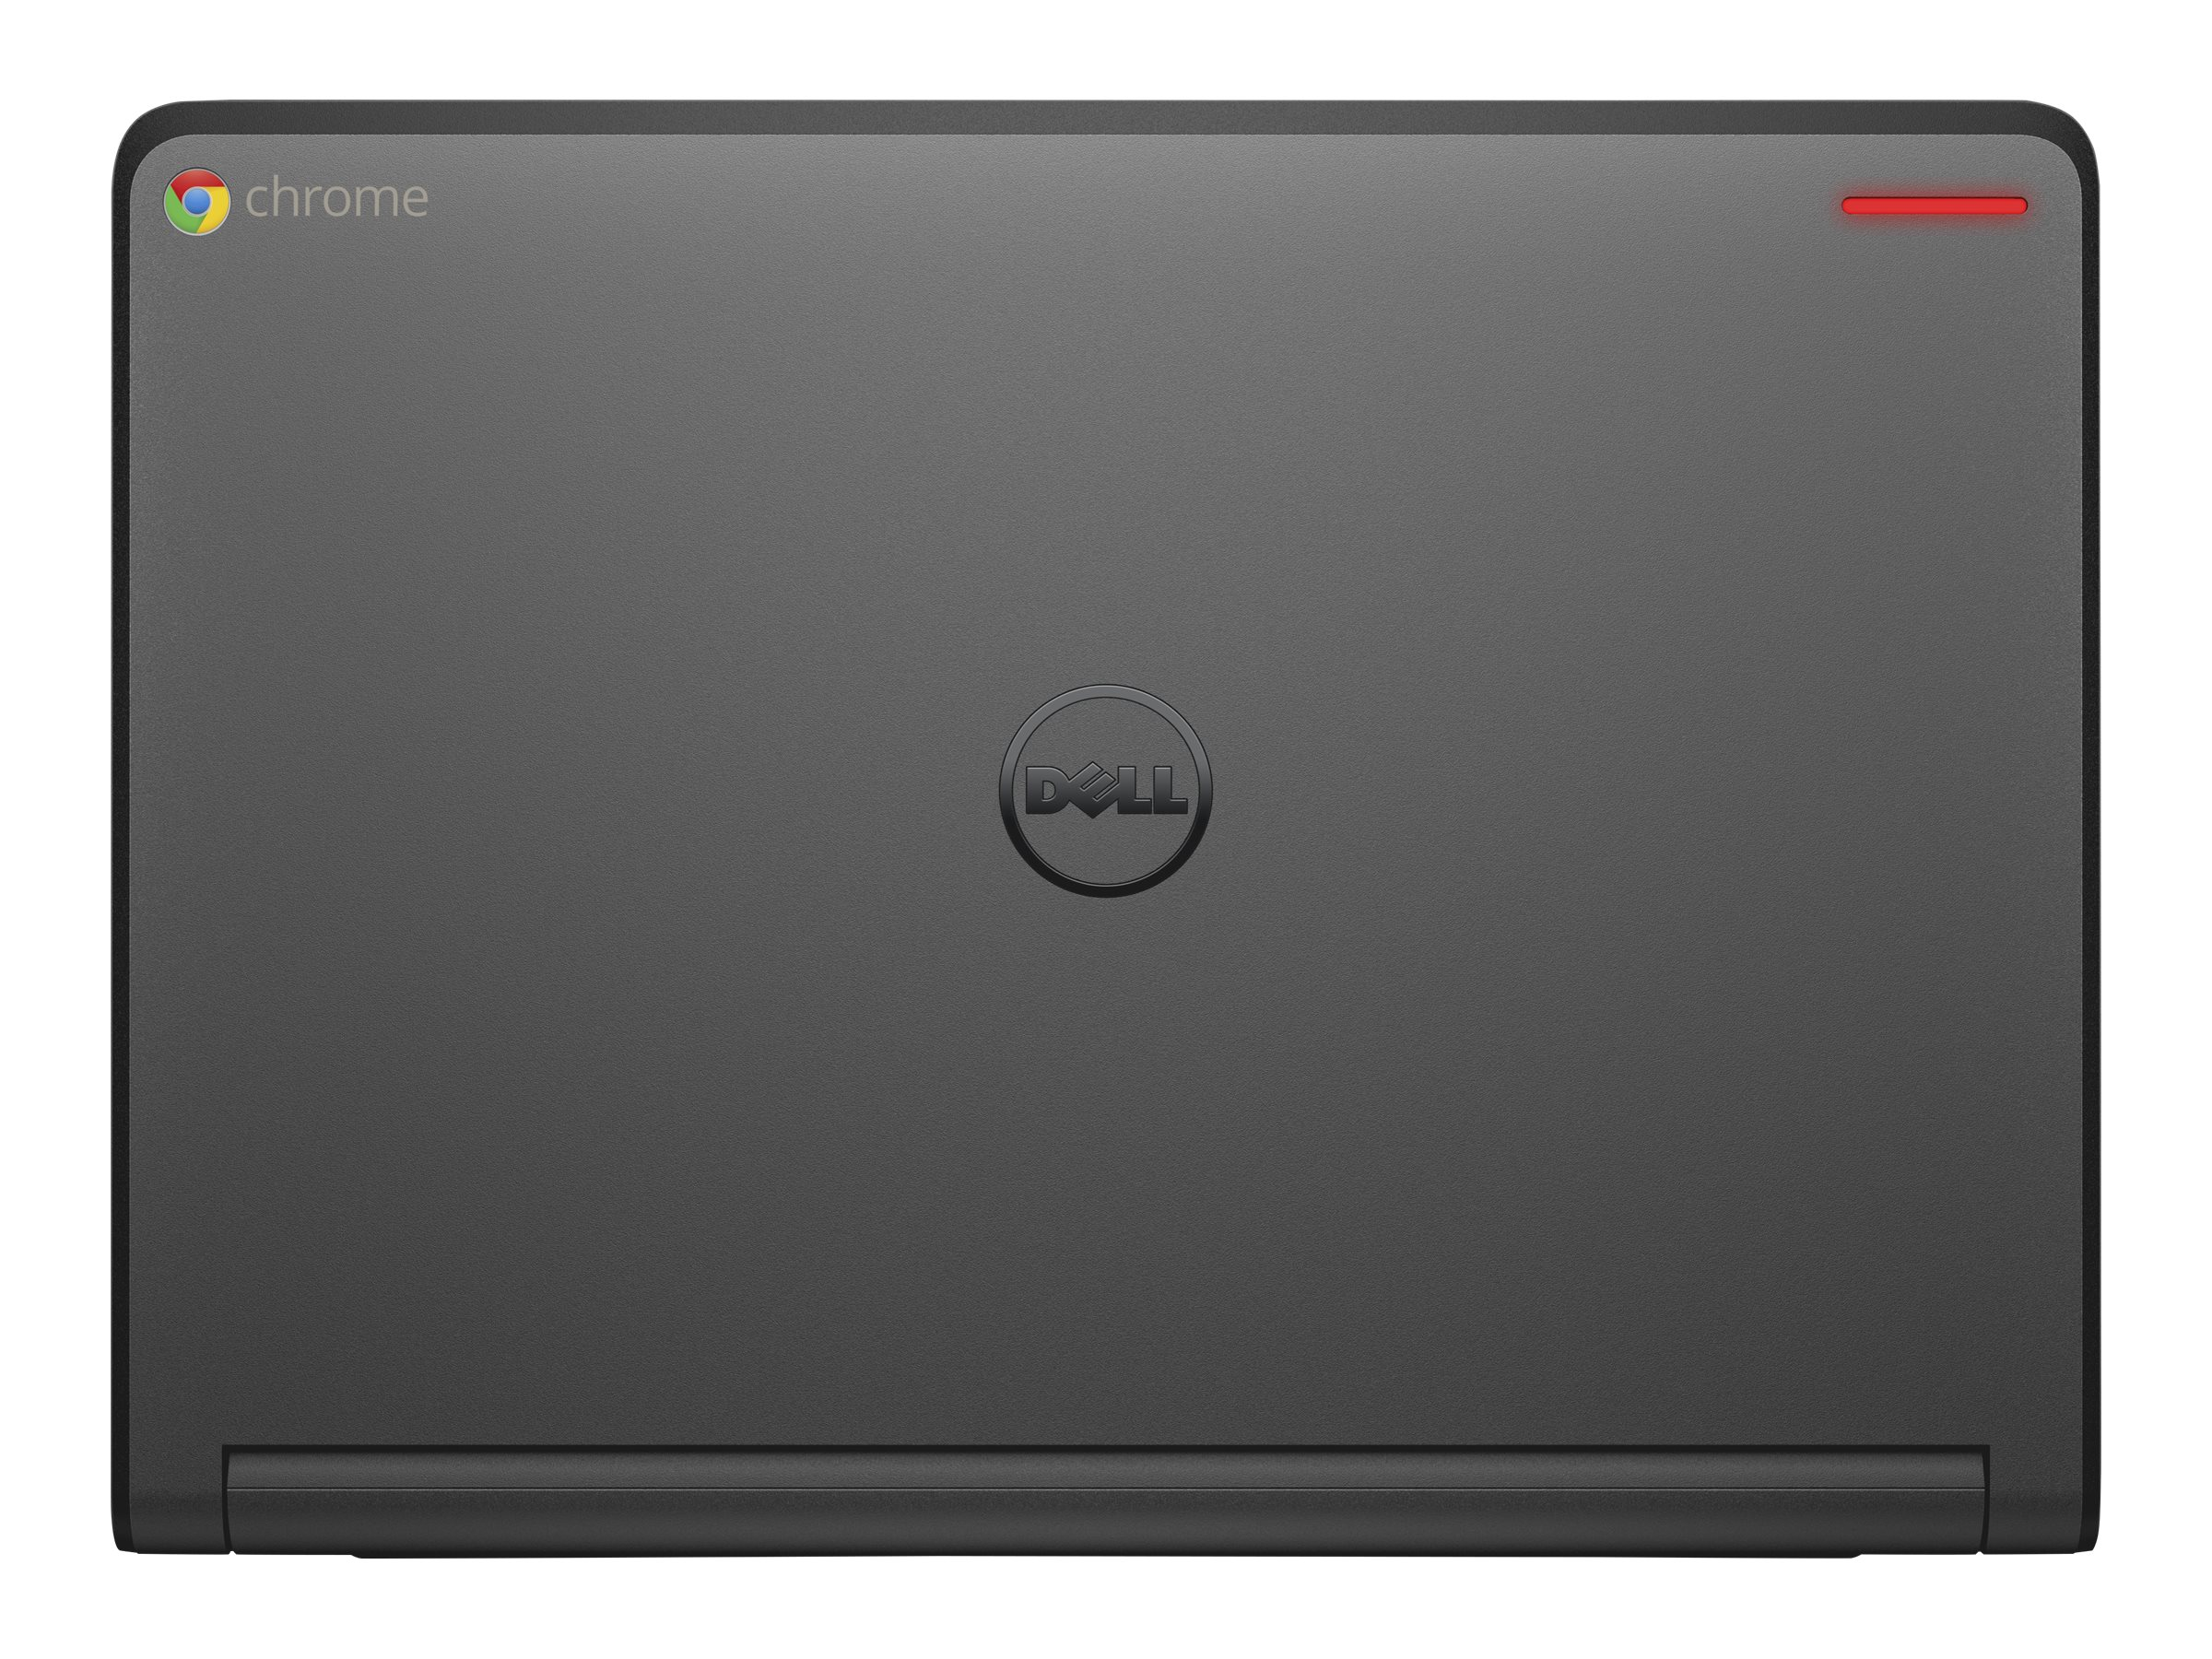 Dell XDGJH Image 5